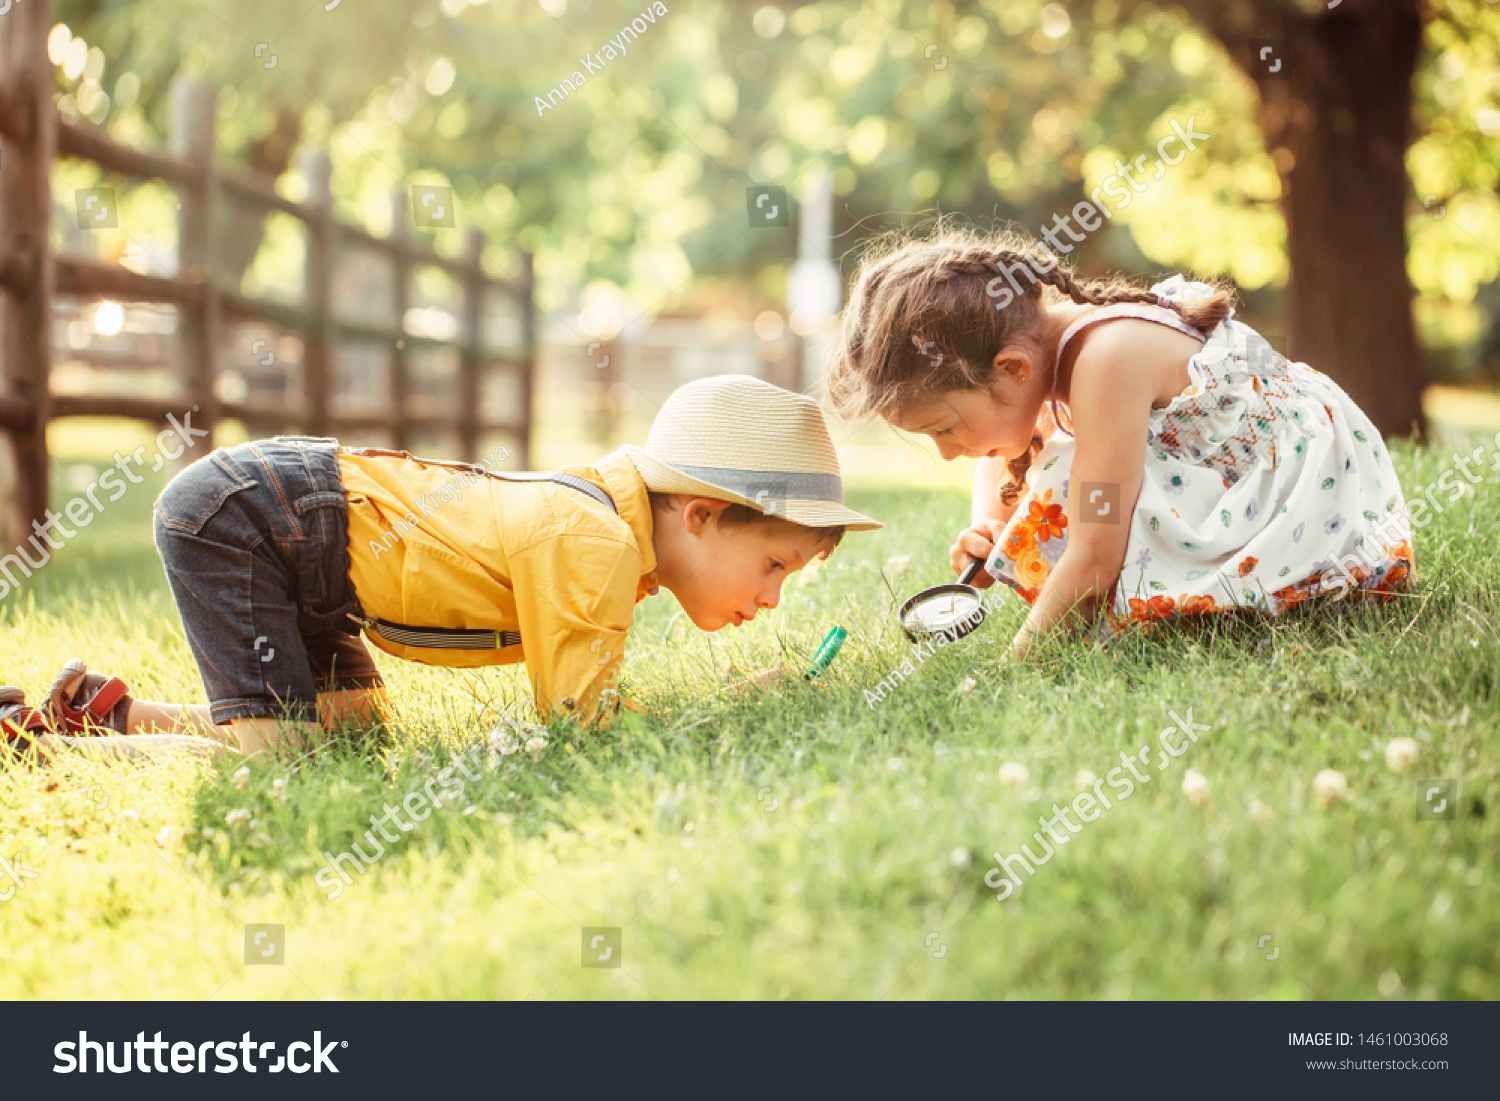 Cute adorable Caucasian girl and boy looking at plants grass in park through magnifying glass. Children friends siblings with loupe studying learning nature outside. Child education concept. #1461003068